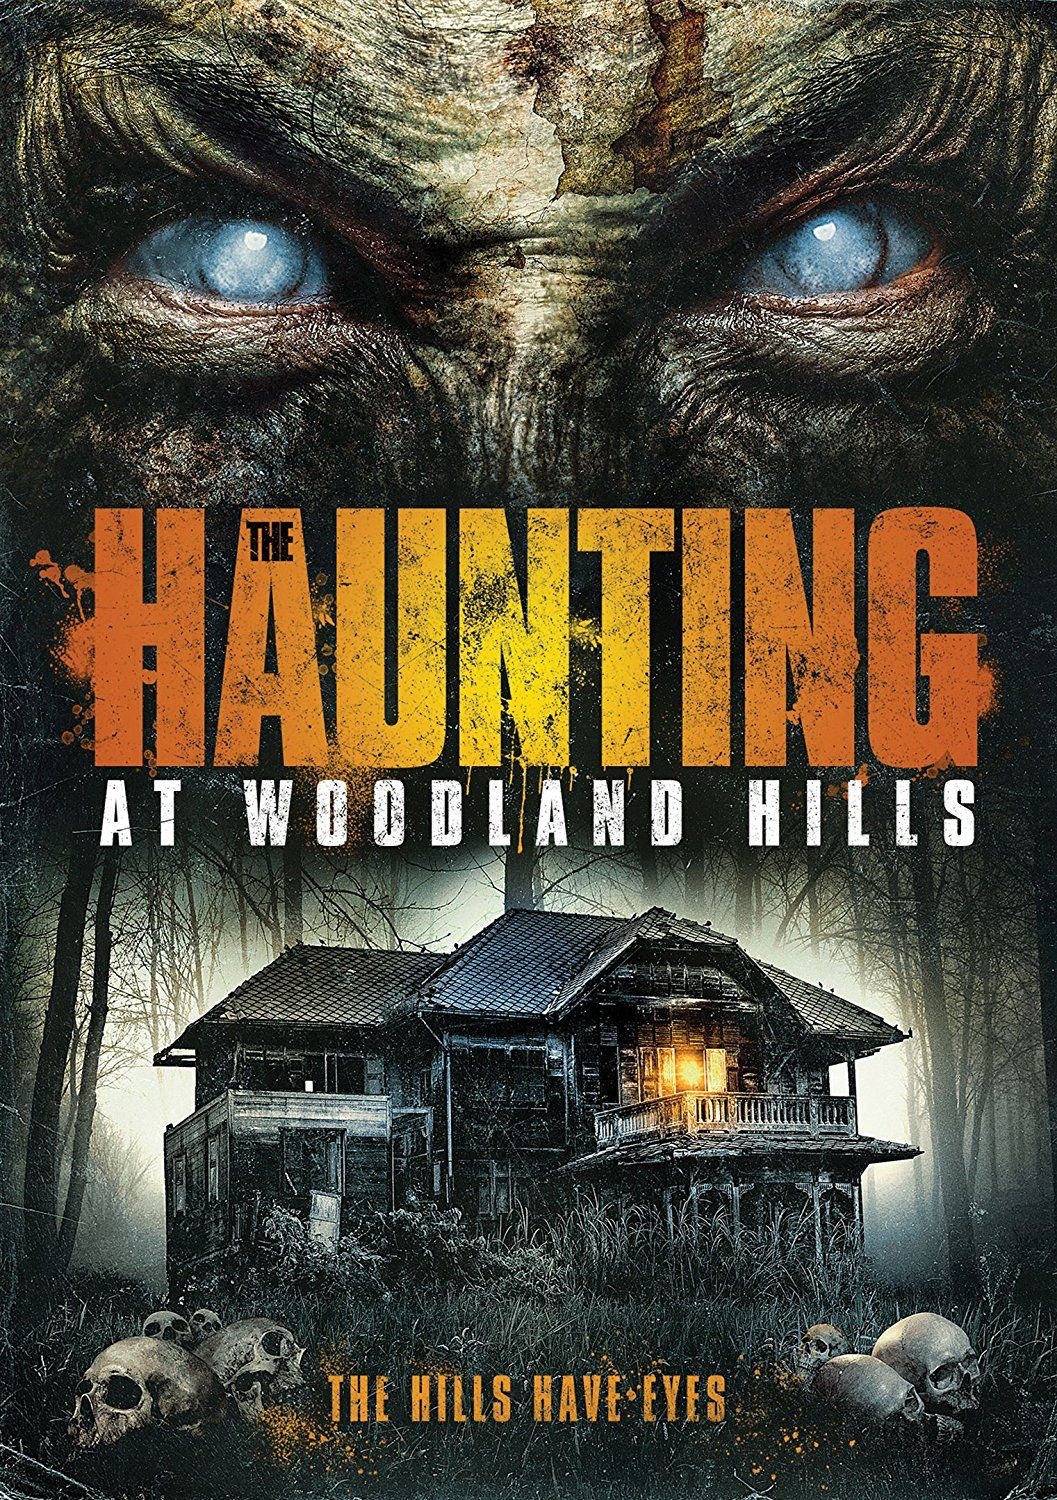 THE HAUNTING AT WOODLAND HILLS DVD (GREEN APPLE